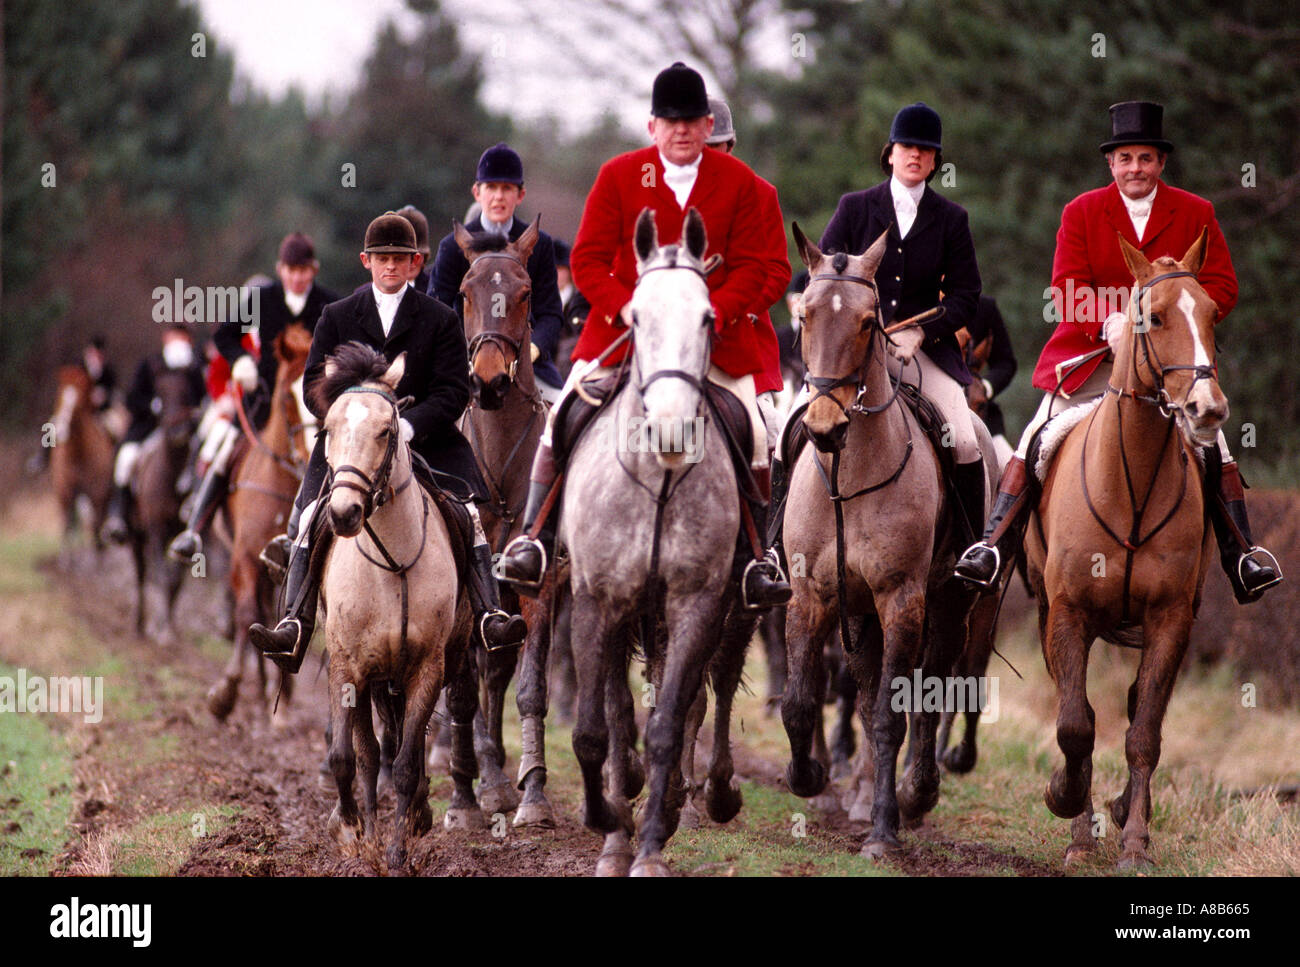 Foxhunting The Quorn hunt in Leicestershire England Stock Photo ...